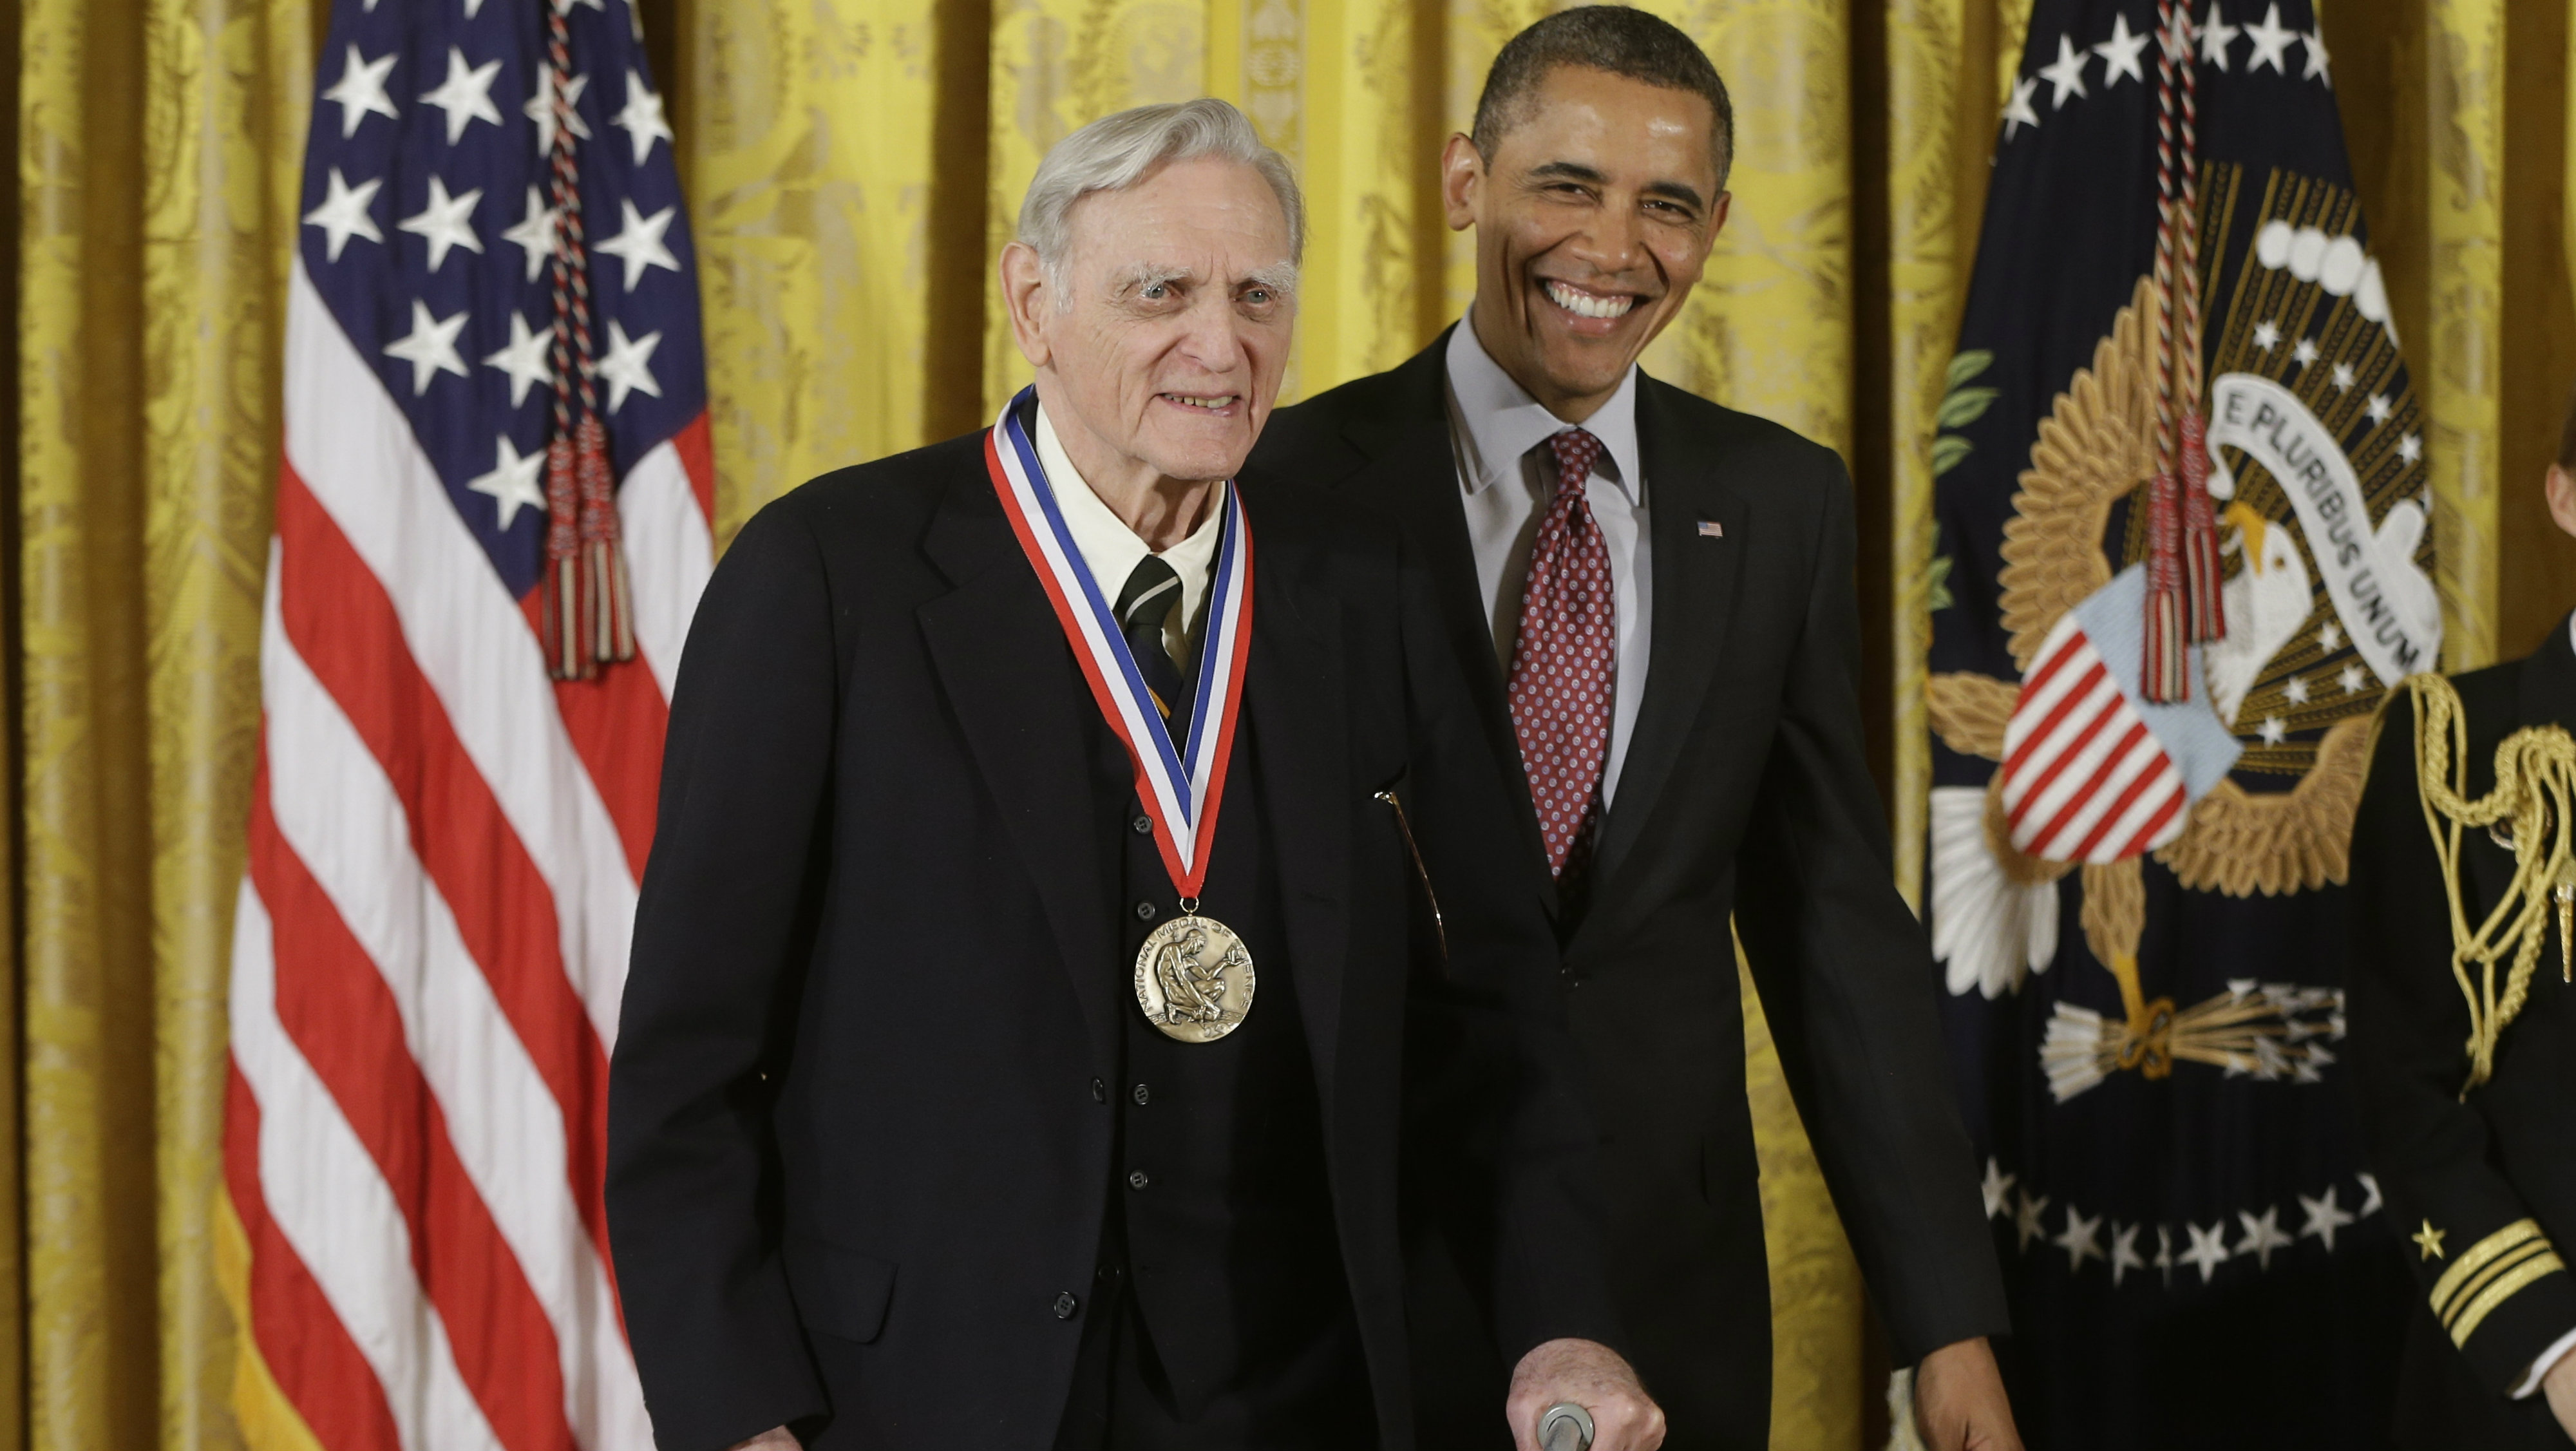 President Barack Obama awards the National Medal of Science to Dr. John Goodenough of the University of Texas, Friday, Feb. 1, 2013, during a ceremony in the East Room of the White House in Washington.